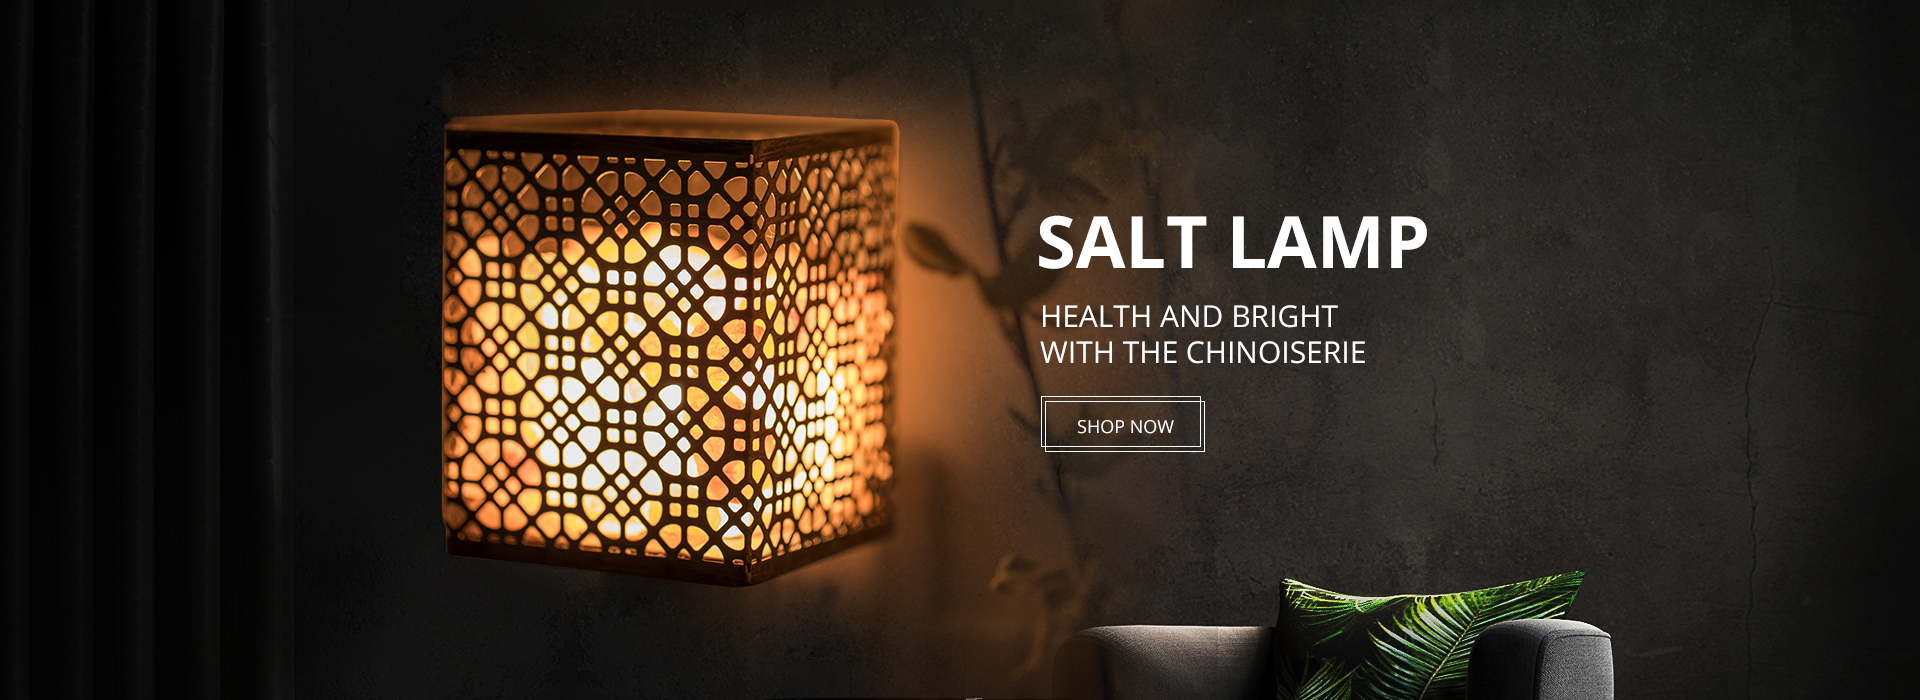 Flint Lighting Store - Small Orders Online Store, Hot Selling and ...